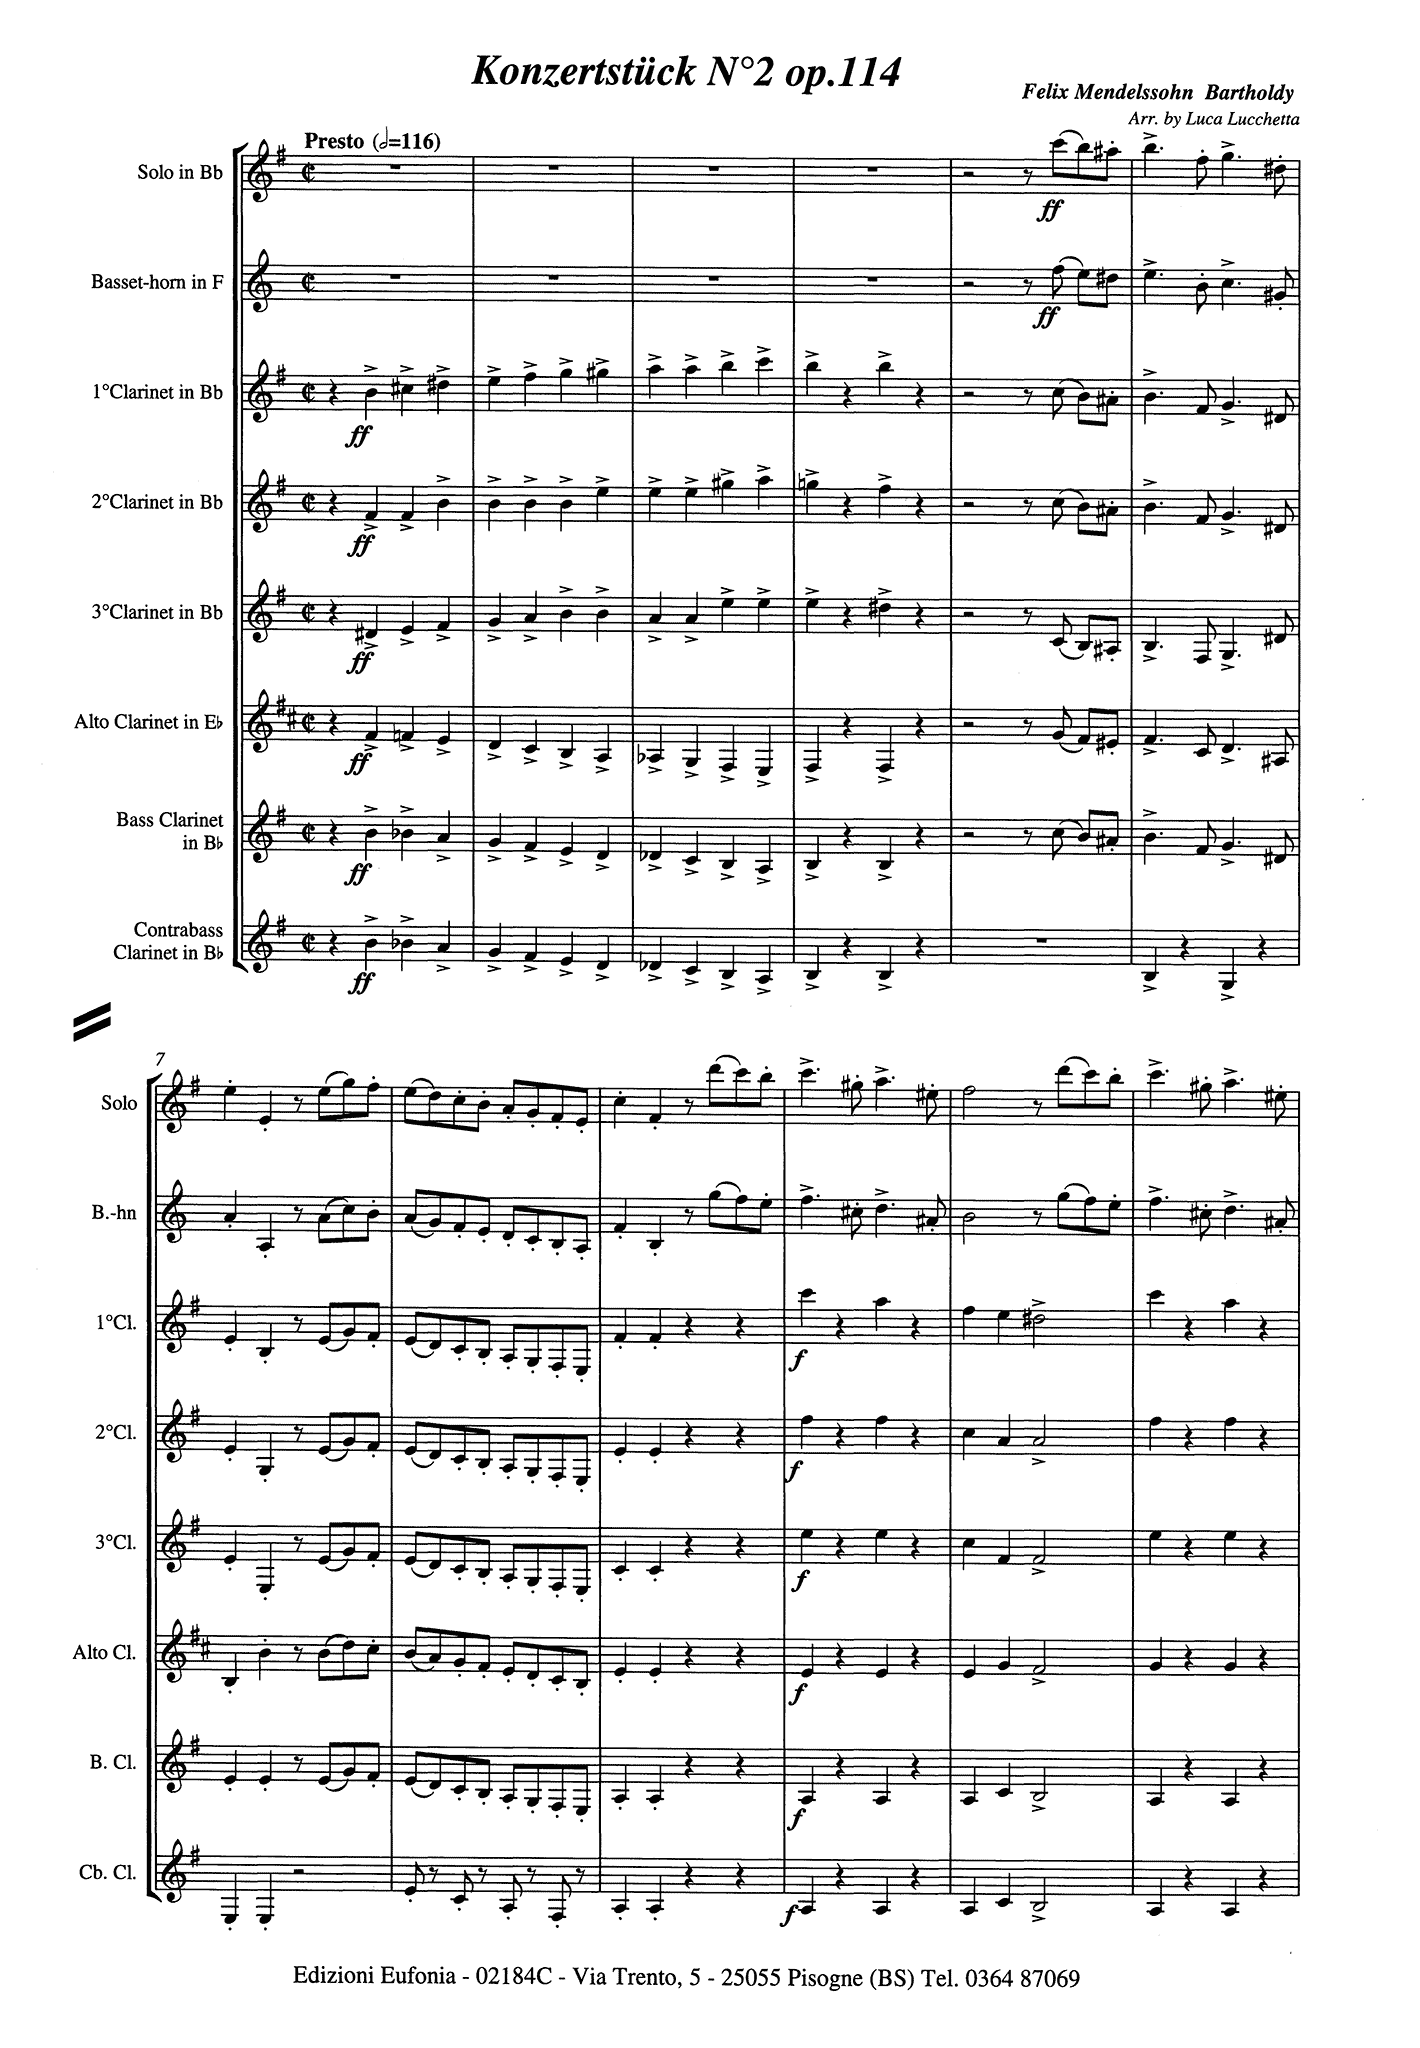 Konzertstück No. 2 in D Minor, Op. 114 Score